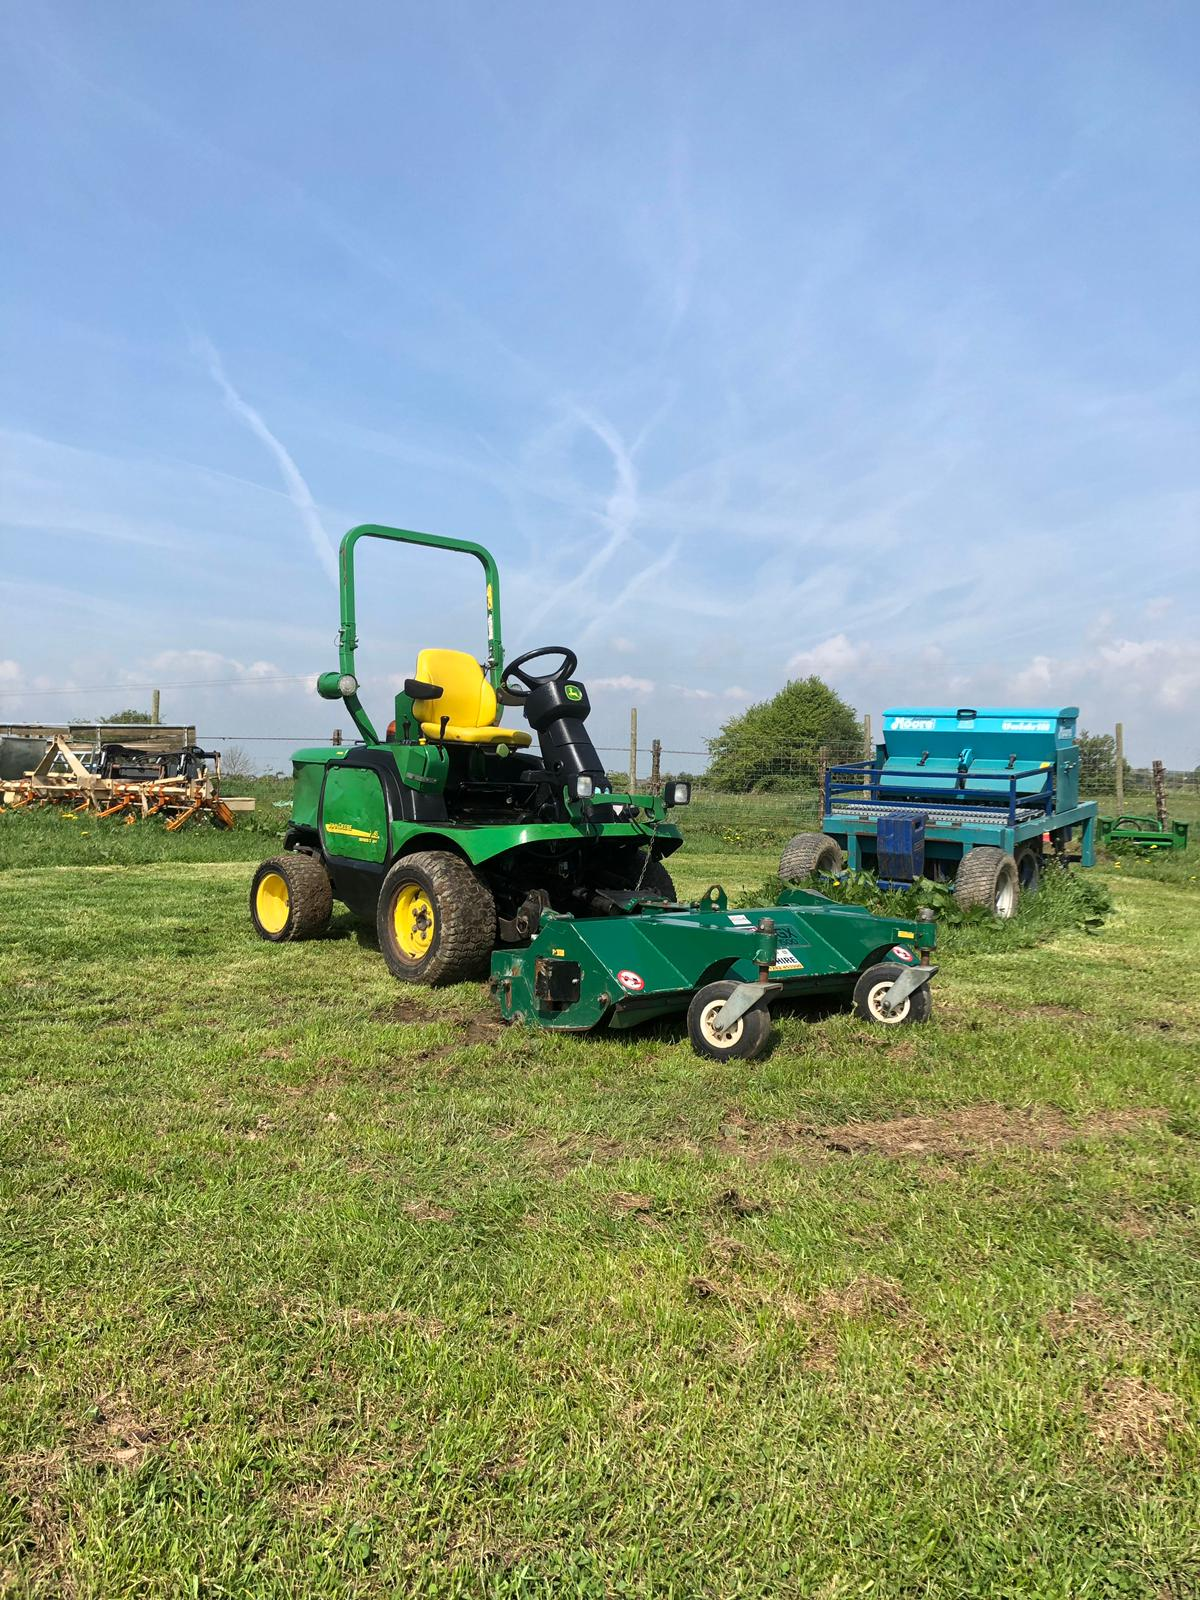 Lot 120 - JOHN DEERE 1445 RIDE ON LAWN MOWER WITH FLAIL MOWER, YEAR 2008, RUNS, WORKS AND CUTS *PLUS VAT*